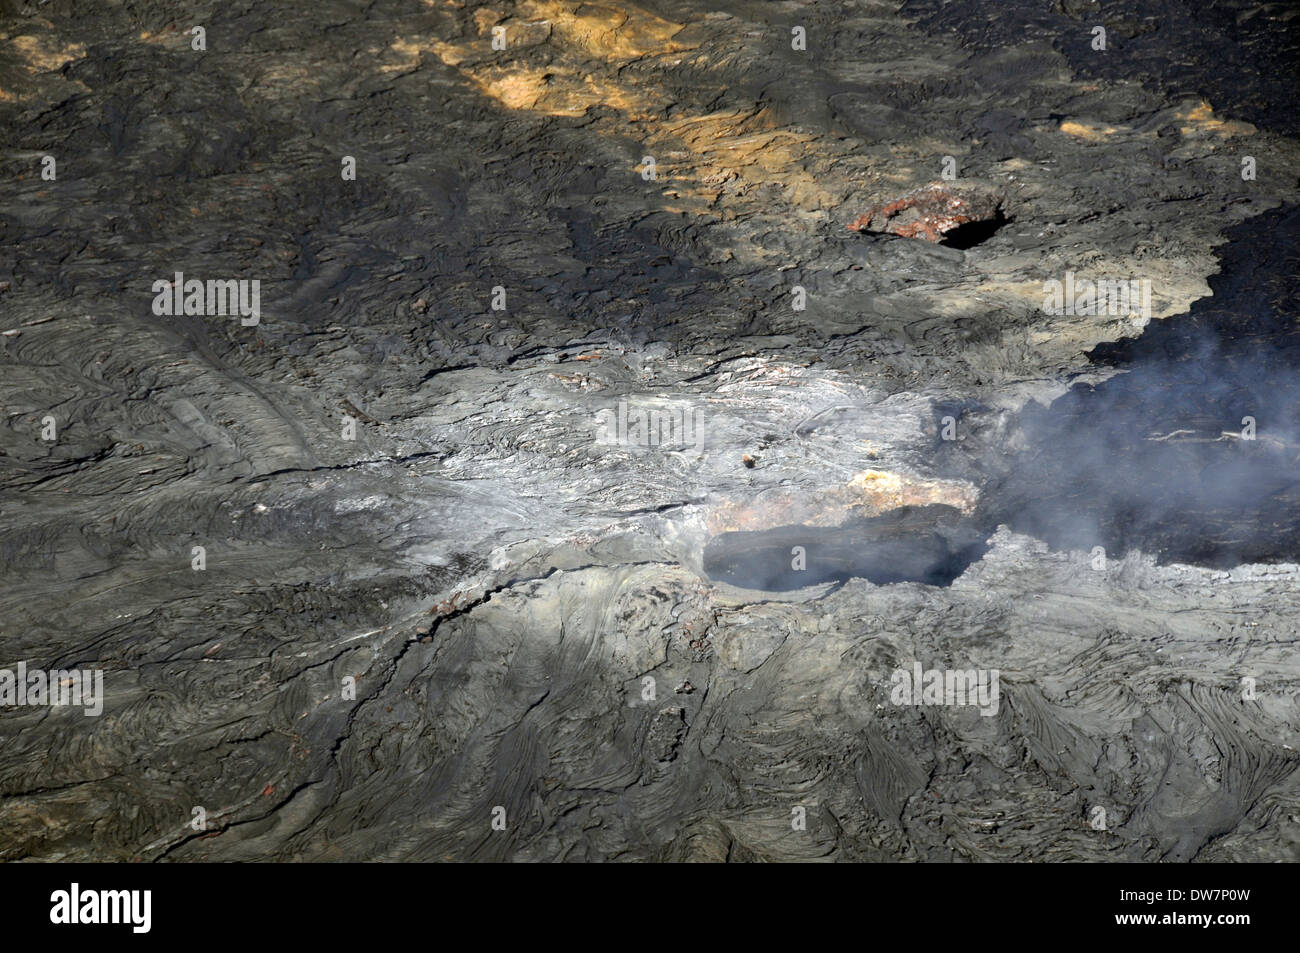 Aerial view of an active vent in the Kilauea volcano crater, Hawaii Volcanoes National Park, Big Island, Hawaii, USA - Stock Image